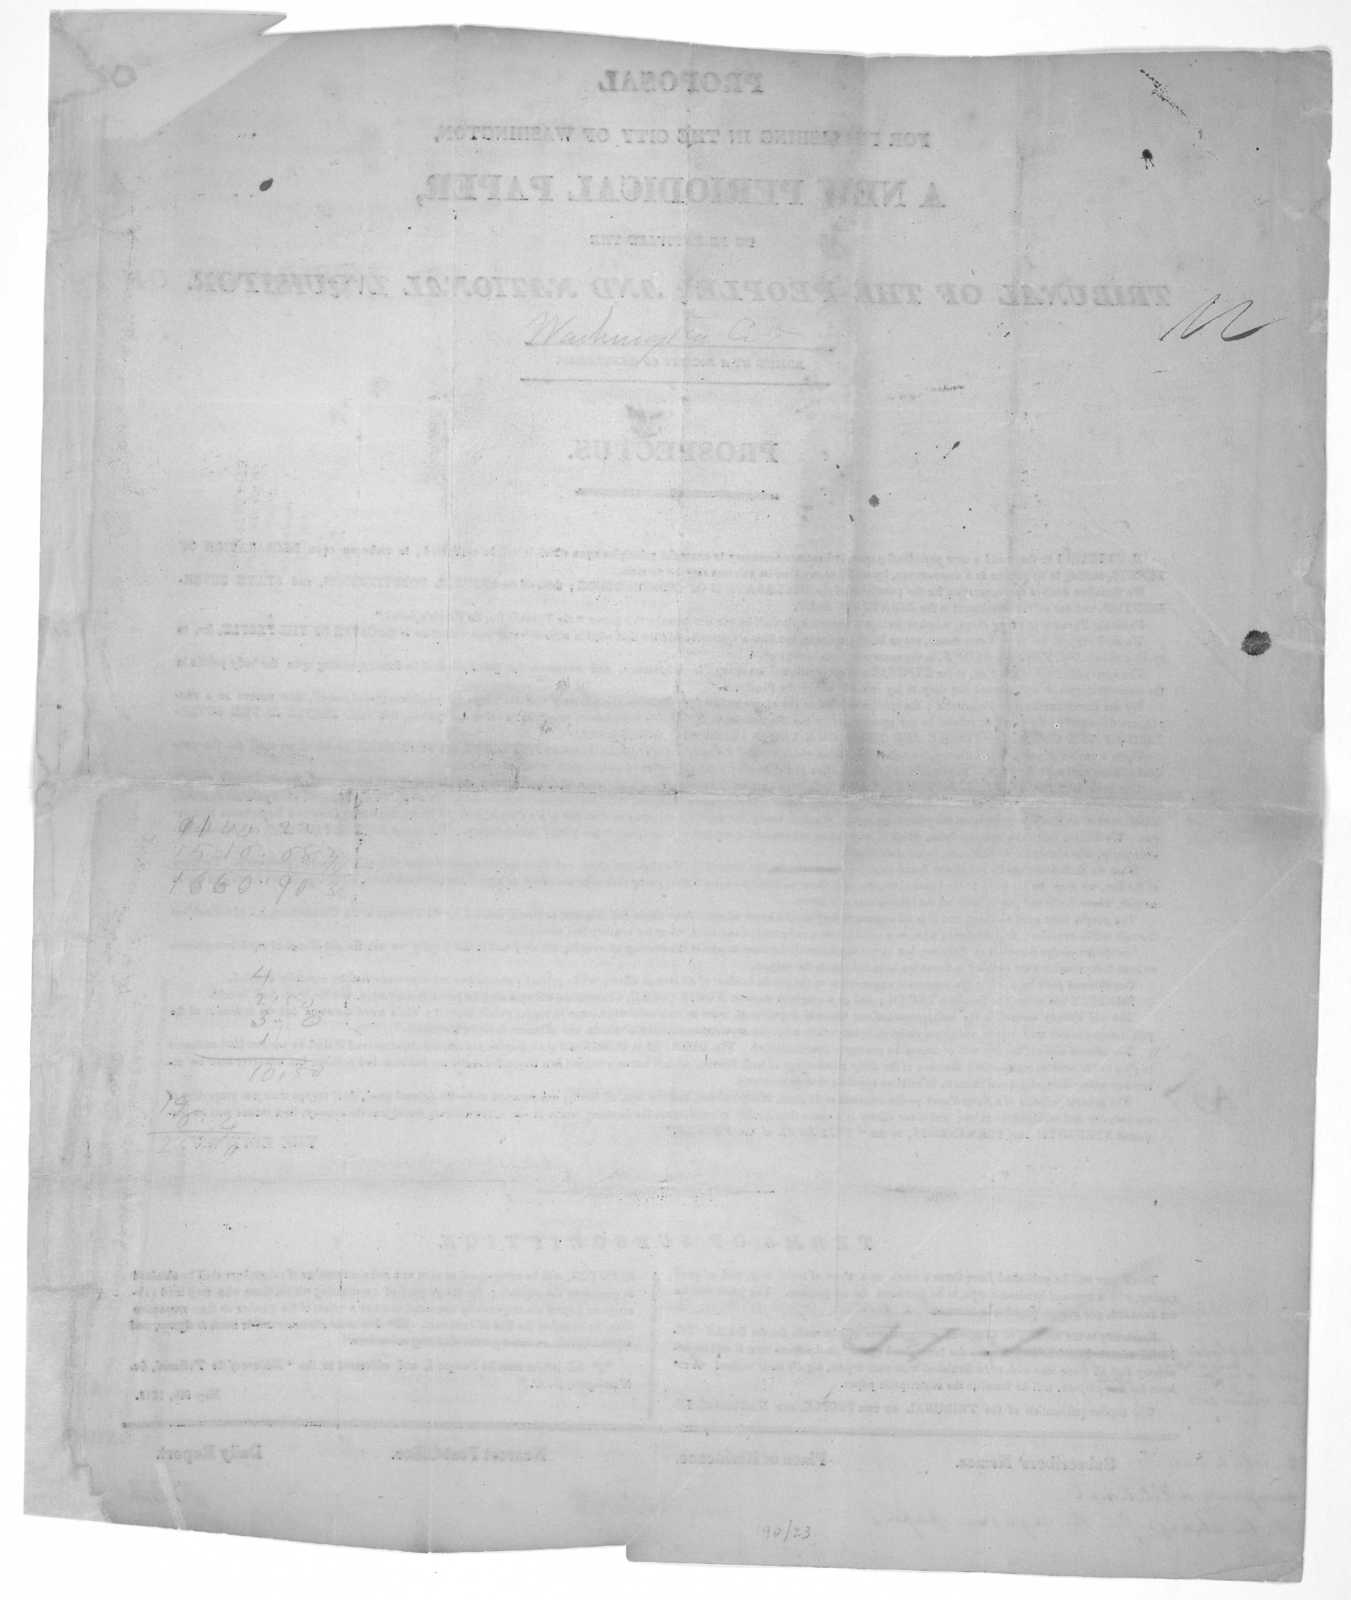 Proposal for publishing in the City of Washington, a new periodical paper, to be entitled the Tribunal of the people; and national inquisitor. Edited by a Society of gentlemen. Prospectus ... Washington, May 9th, 1818.